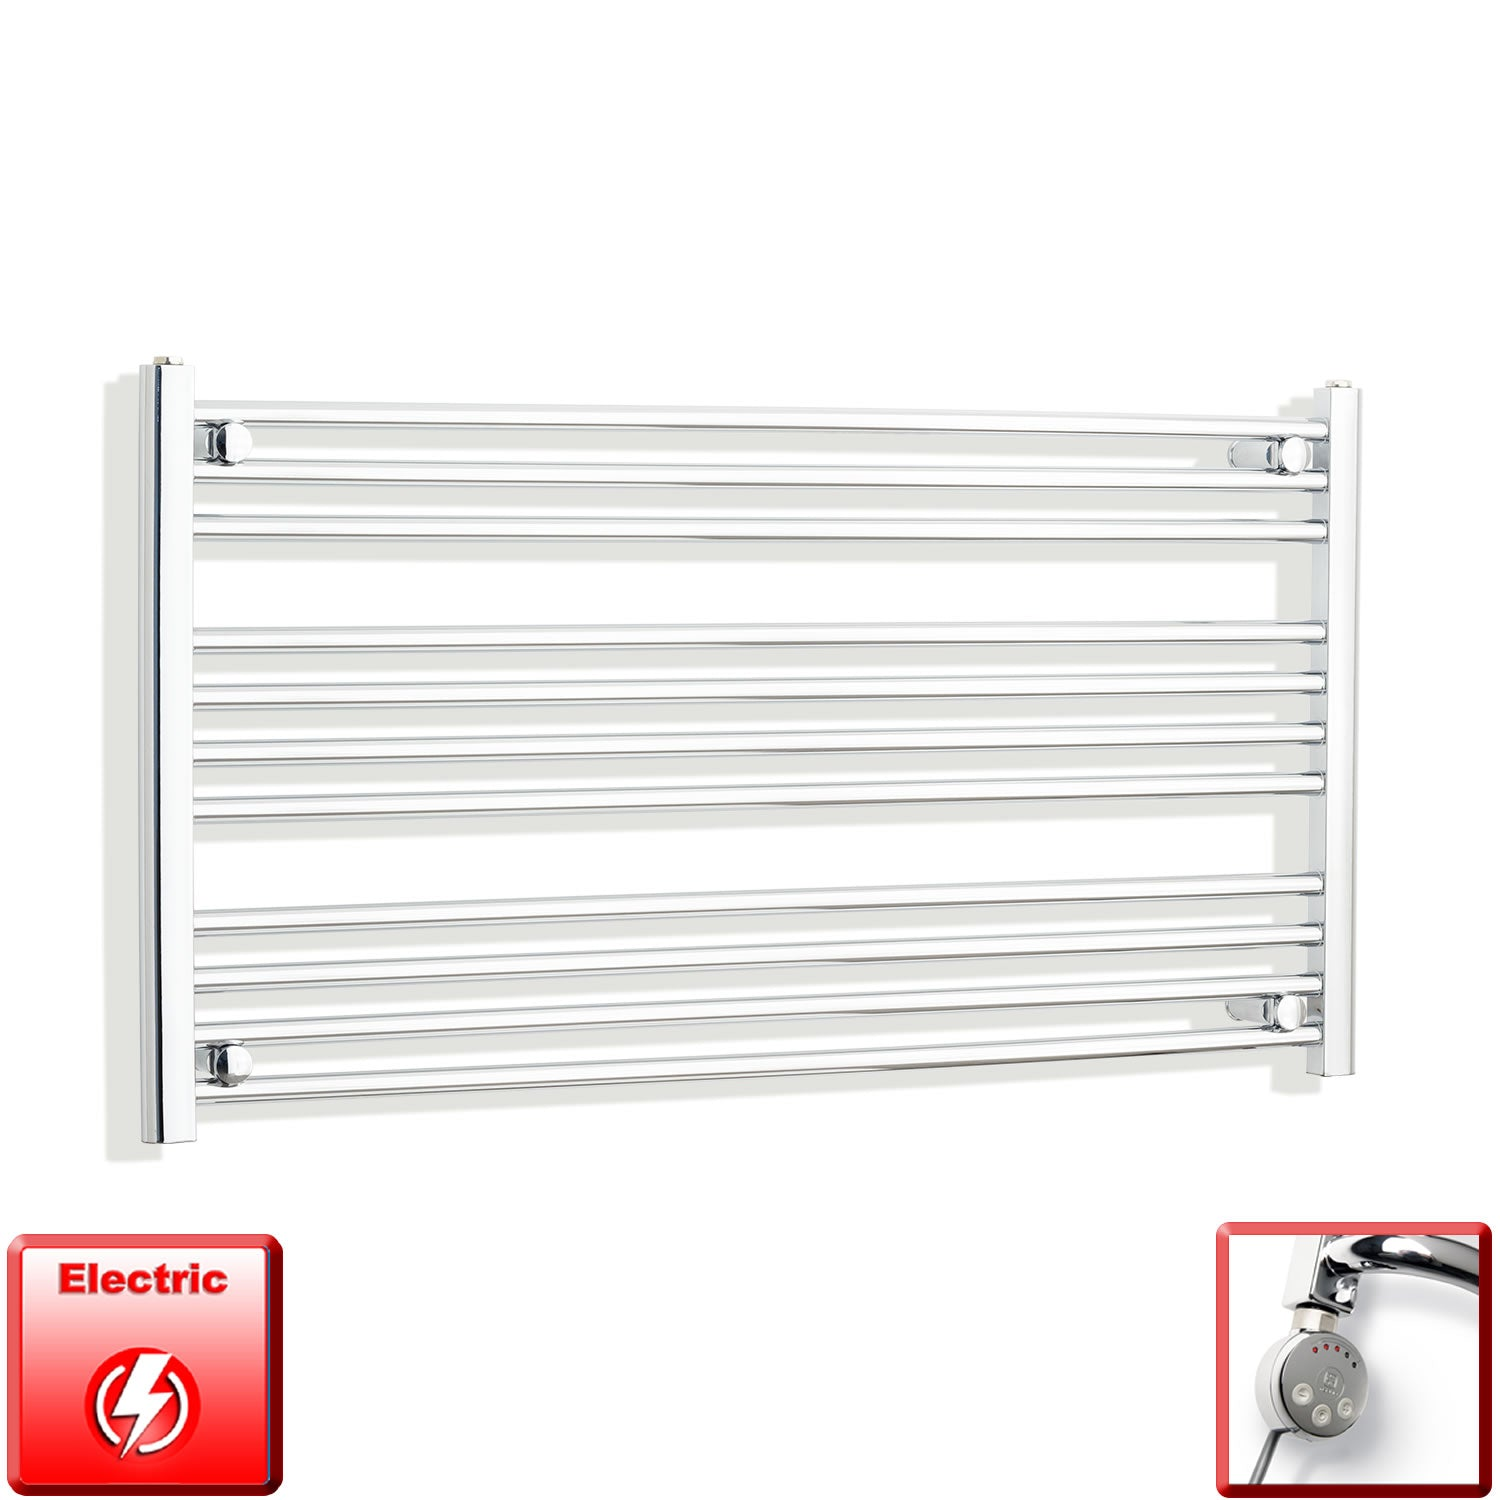 1200mm Wide 600mm High Flat Chrome Pre-Filled Electric Heated Towel Rail Radiator HTR,MEG Thermostatic Element